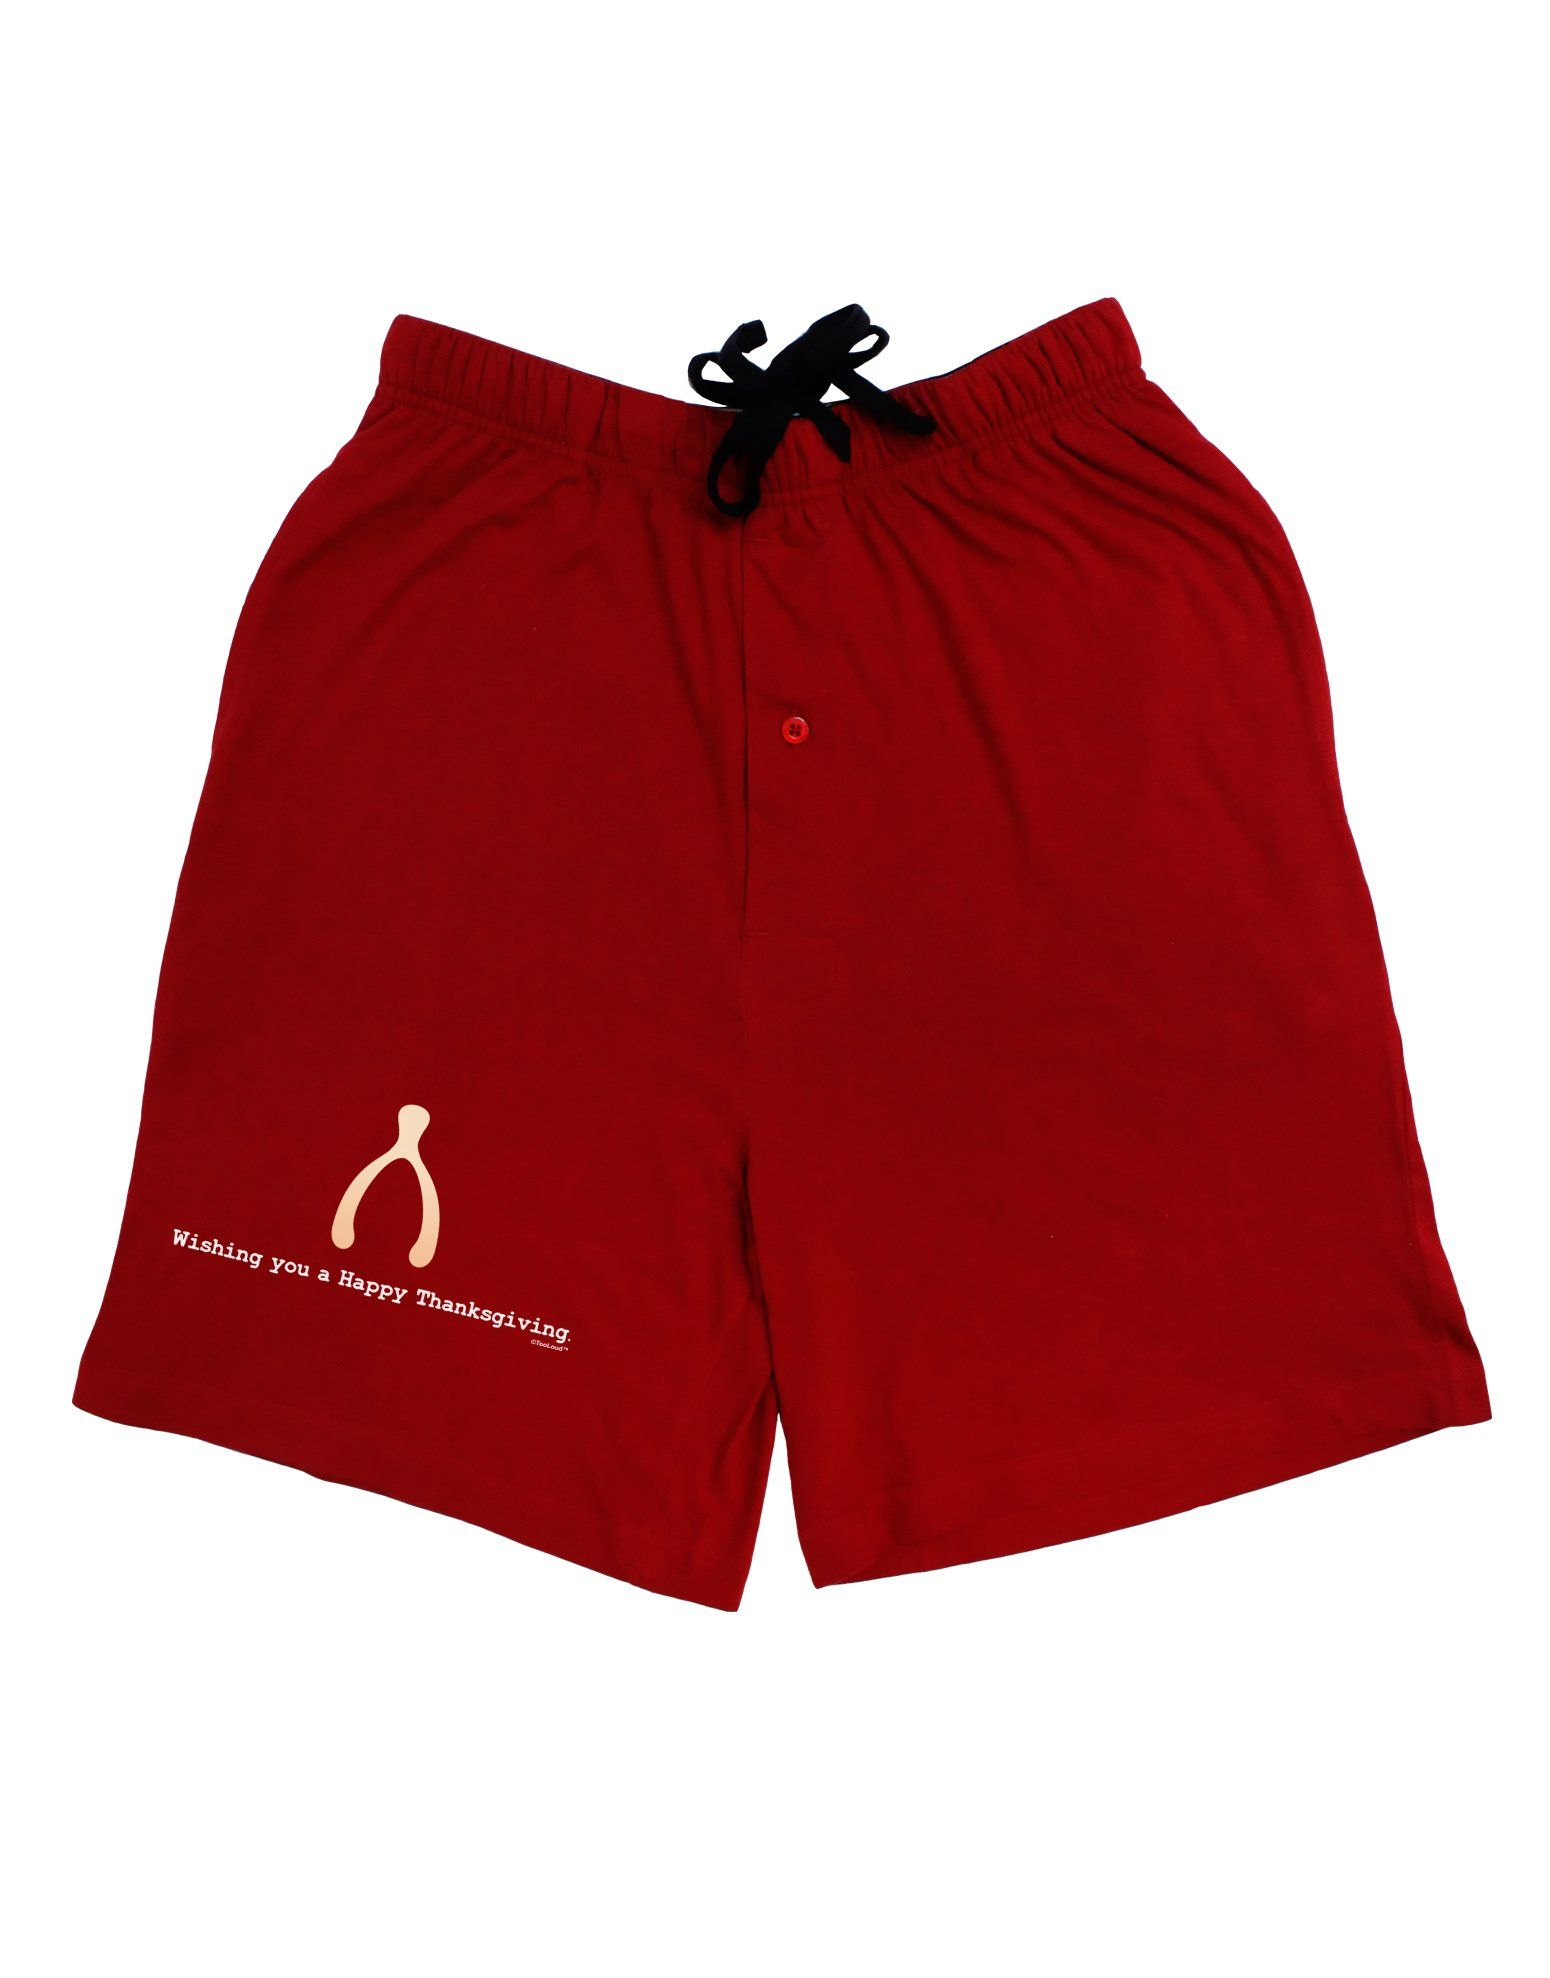 Wishing You a Happy Thanksgiving Wishbone Adult Lounge Shorts - Red- Medium